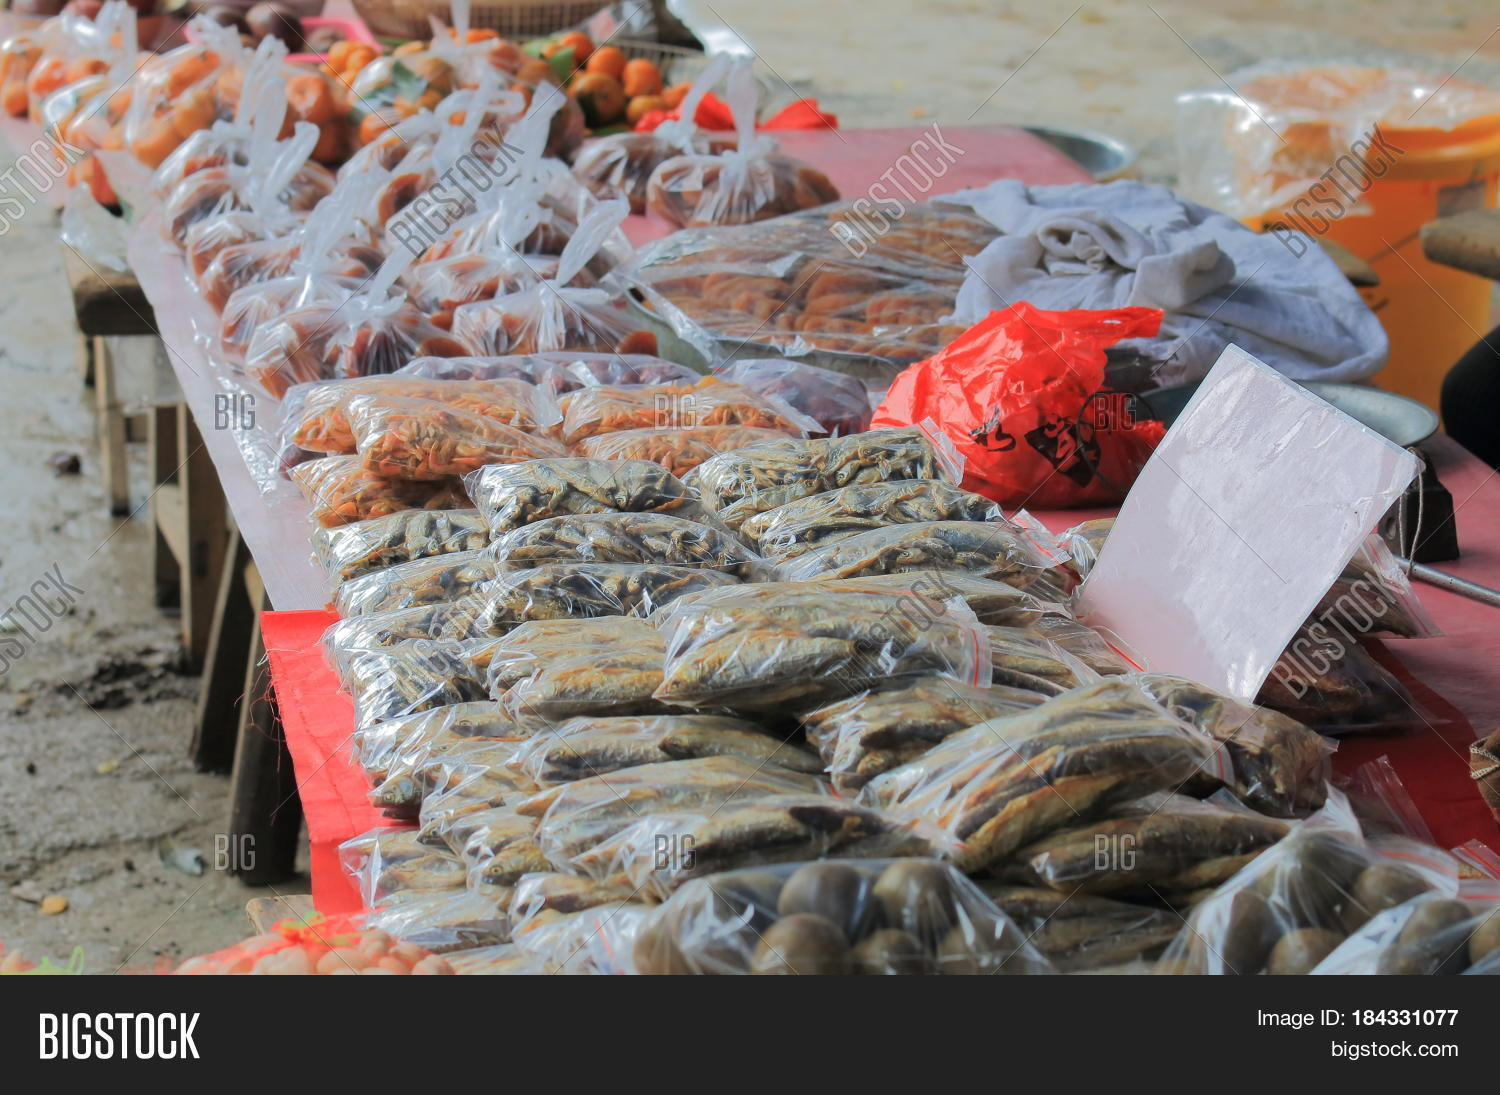 Xingping historical village fish image photo bigstock for Village fish market